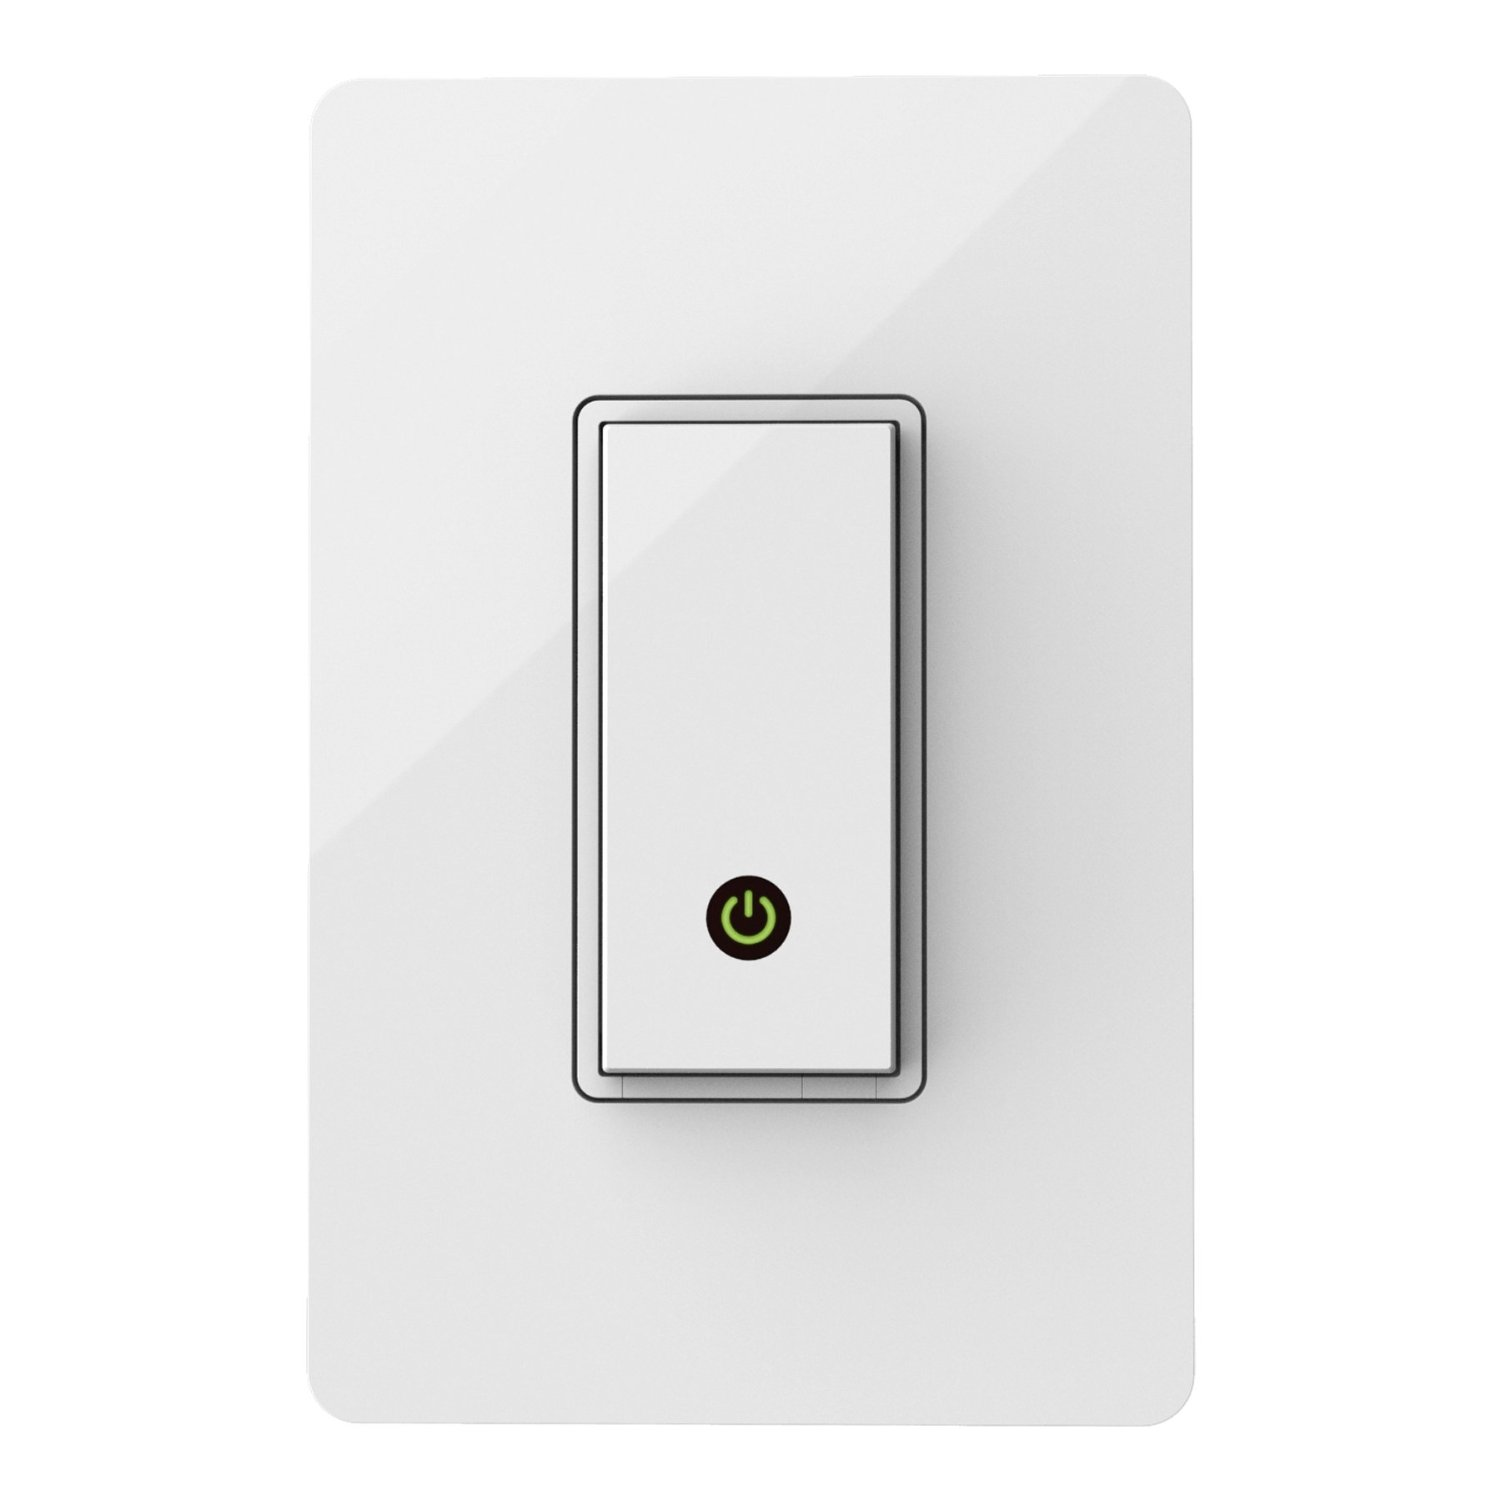 TOP 10 Wall light switches of 2017 Warisan Lighting